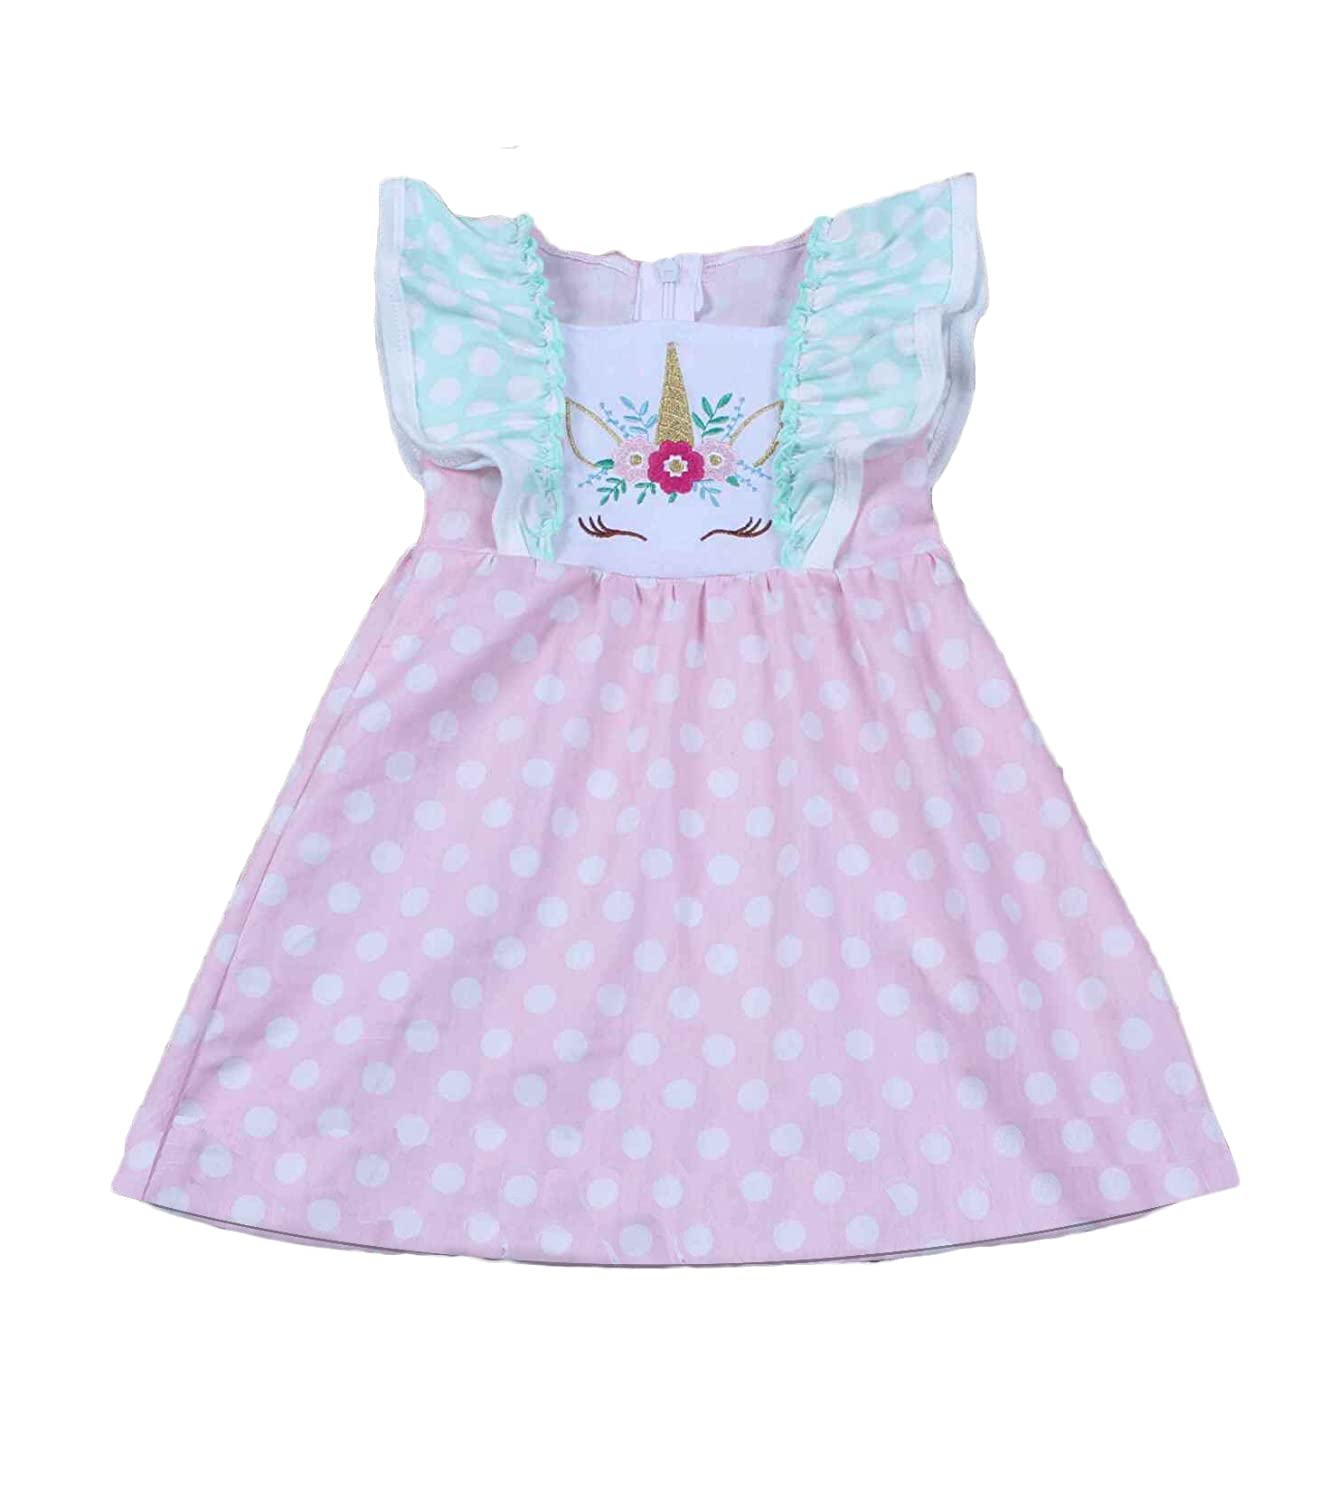 Yawoo Haan Little Girls Summer Embroidery Boutique Dress with Belt